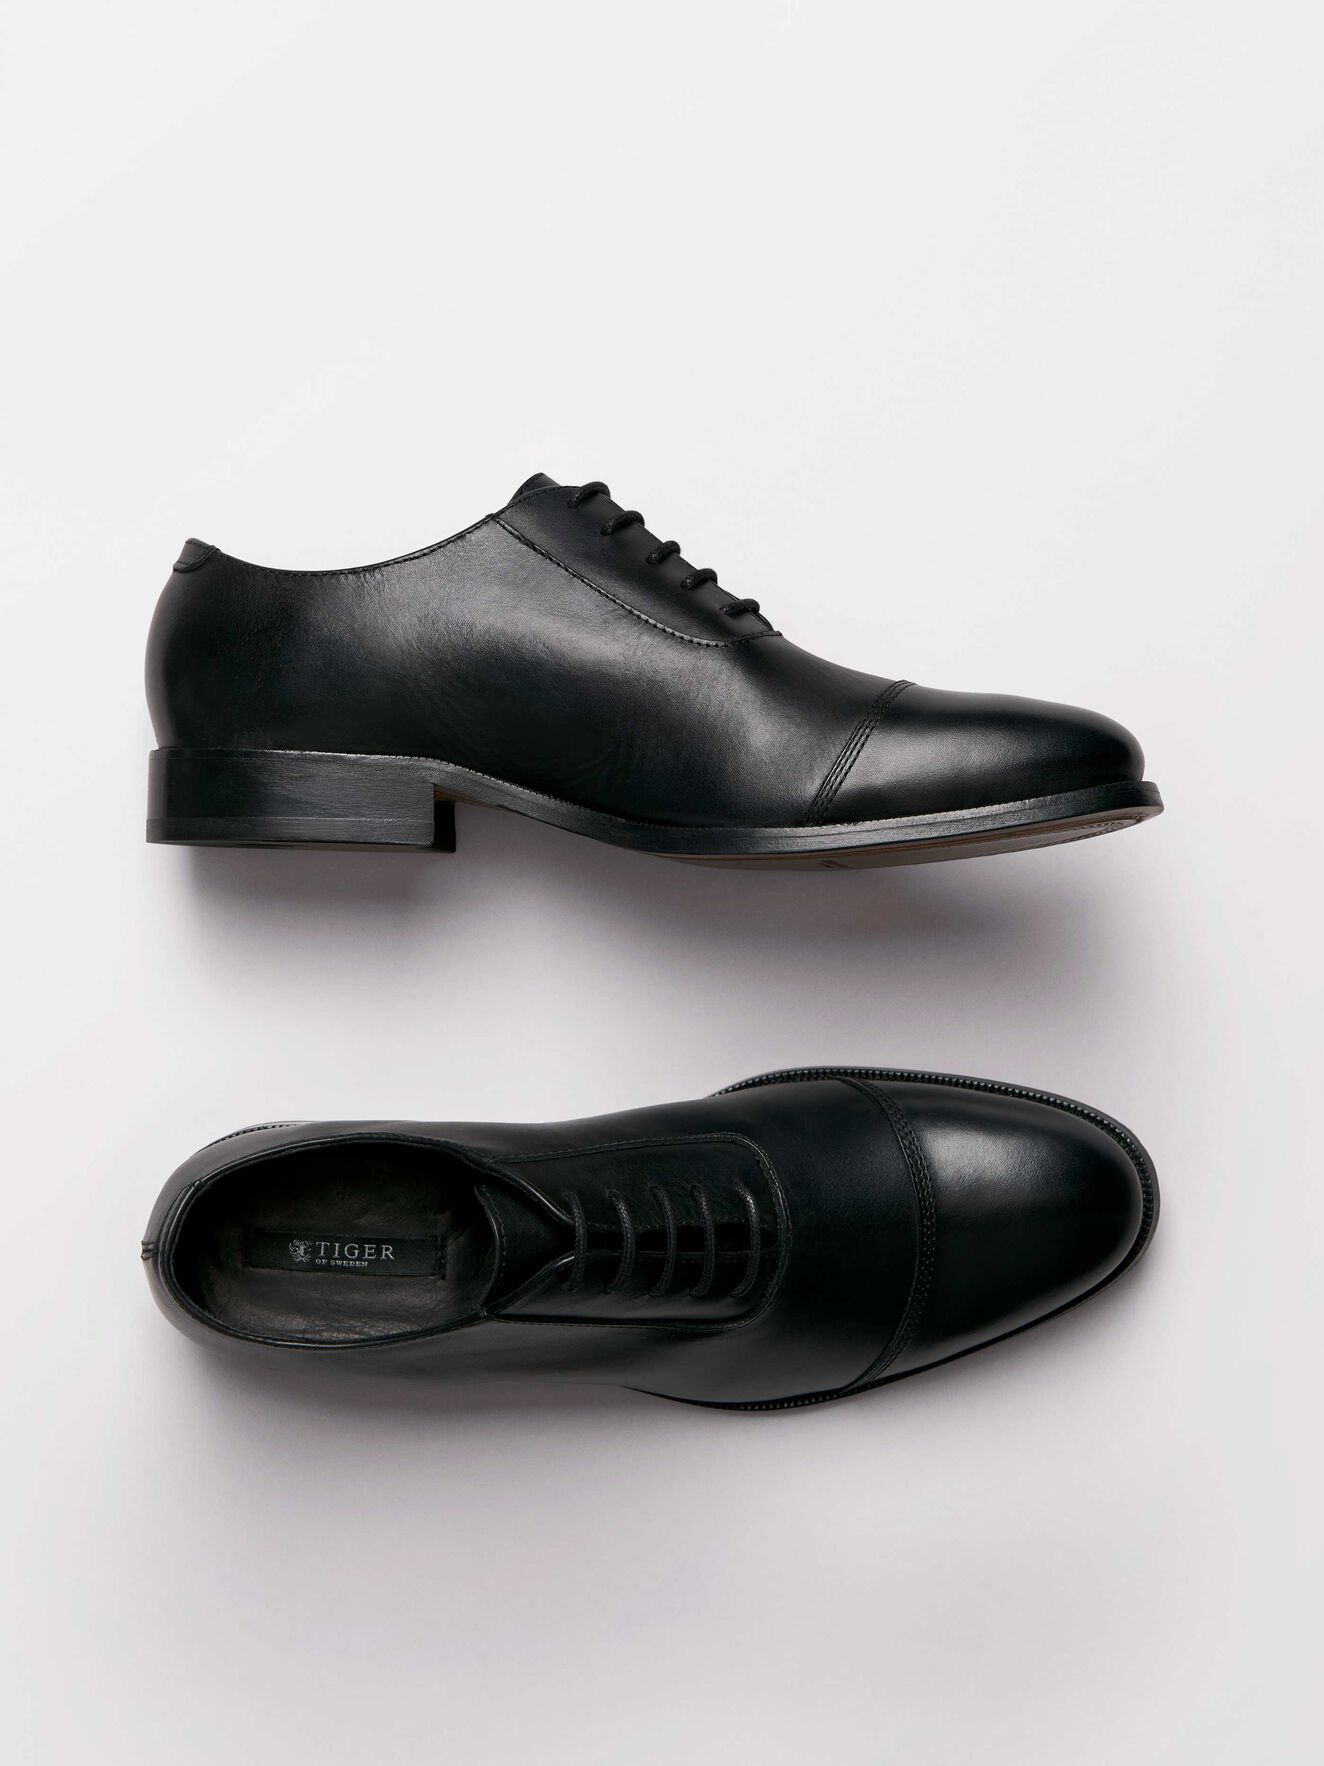 Lundh Shoe in Black from Tiger of Sweden